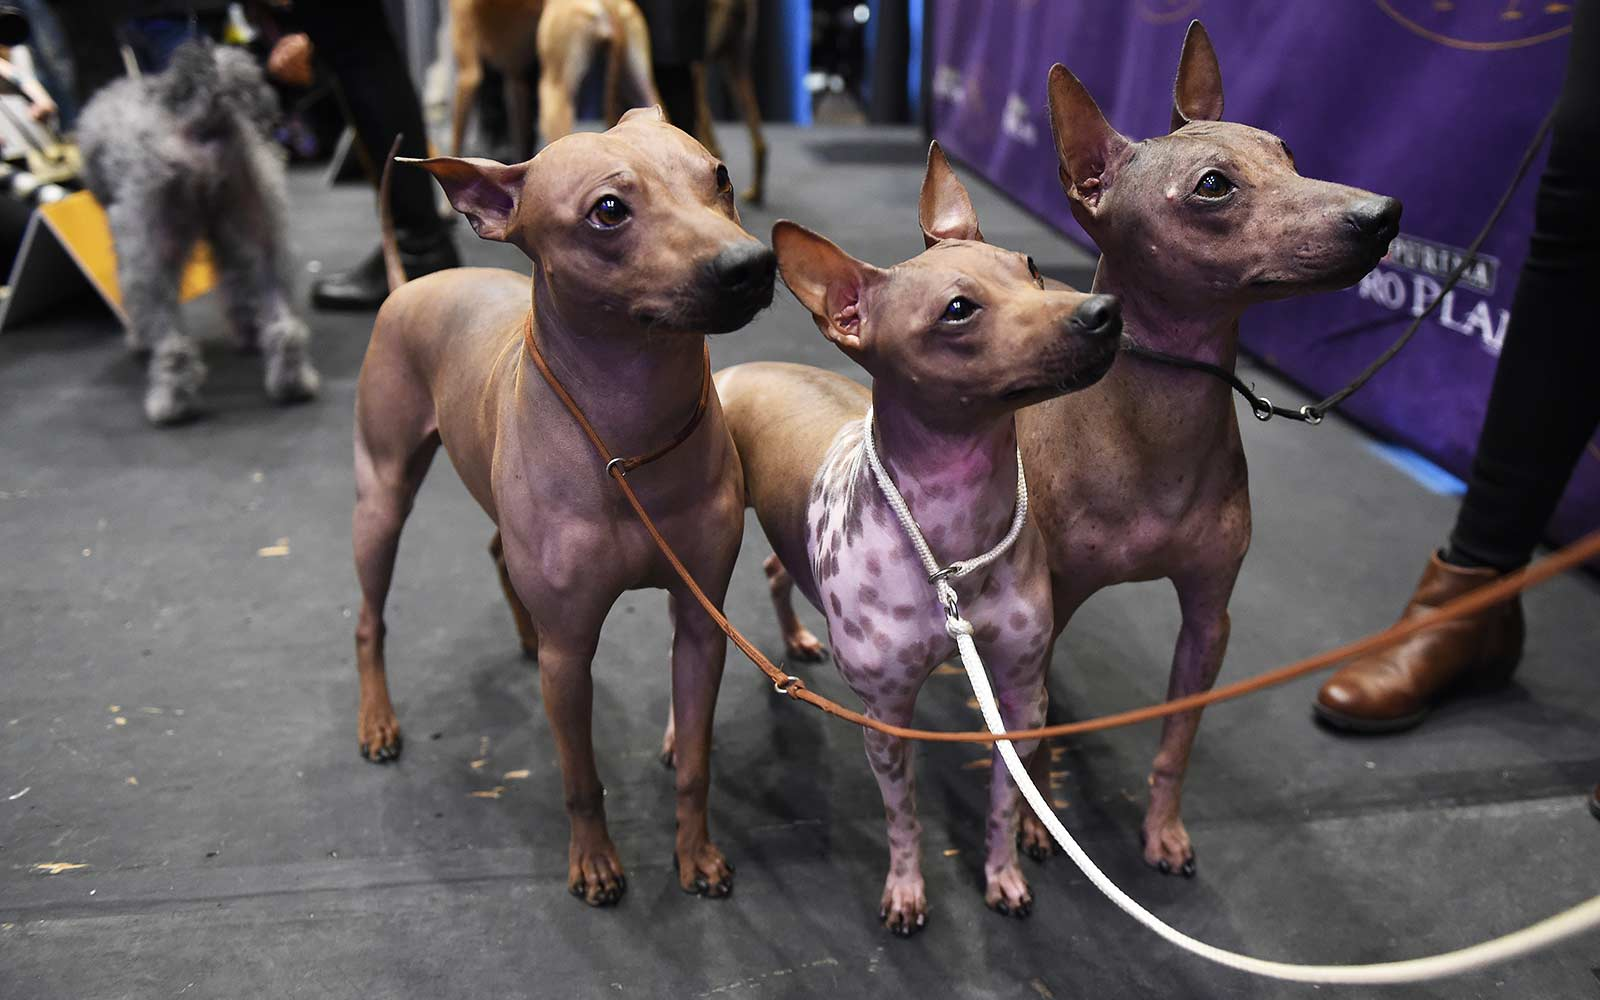 Westminster Kennel Club Dog Show - Cats